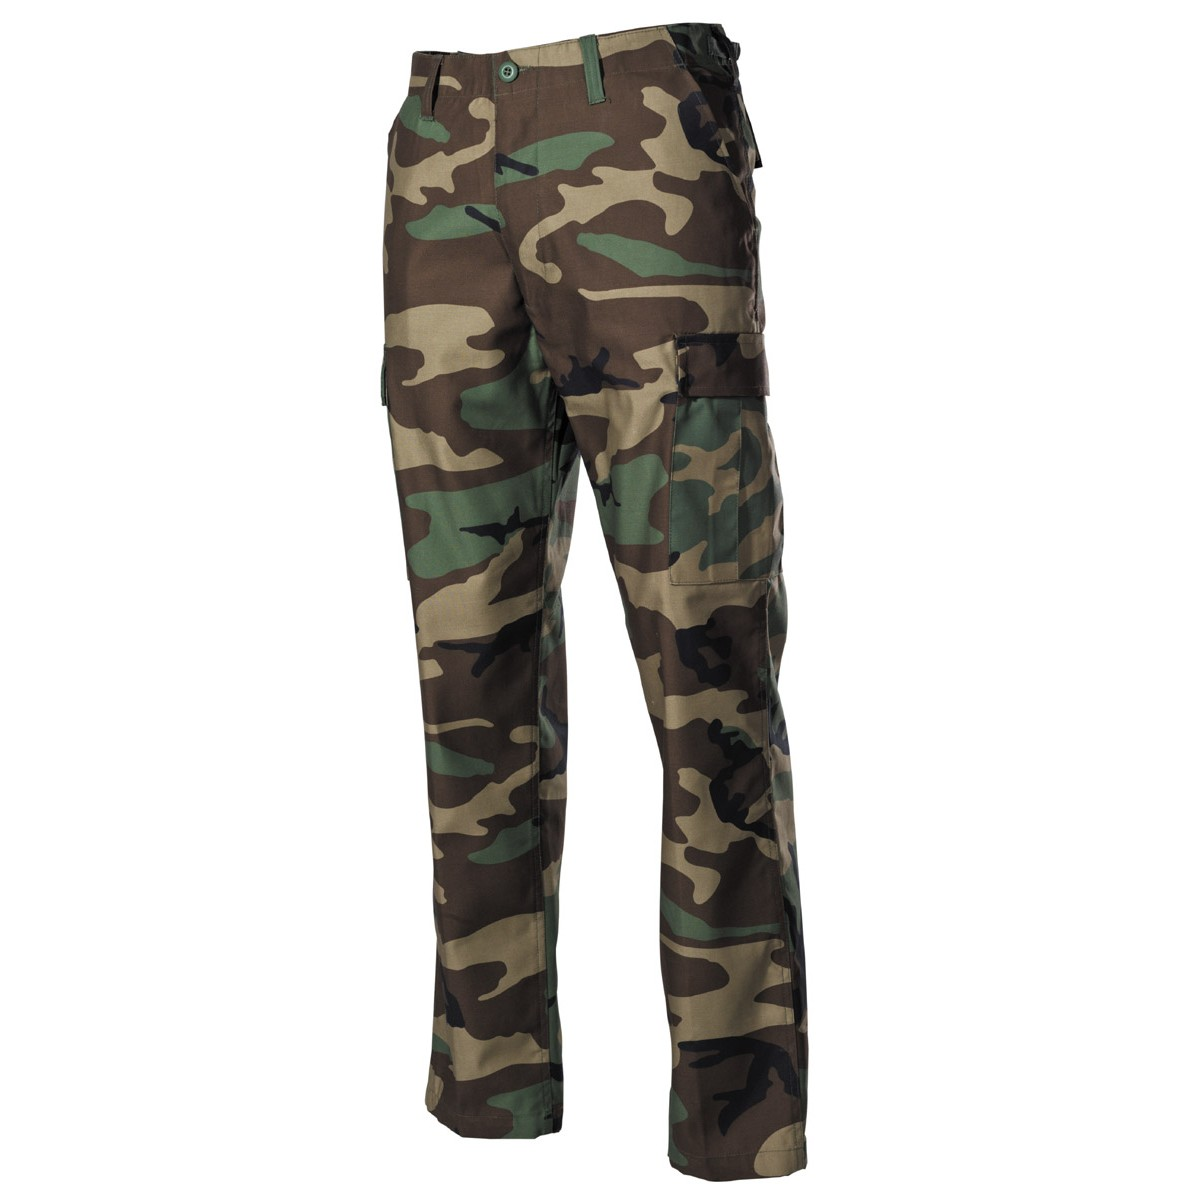 US Army Woodland Camo Pattern BDU Field Pants